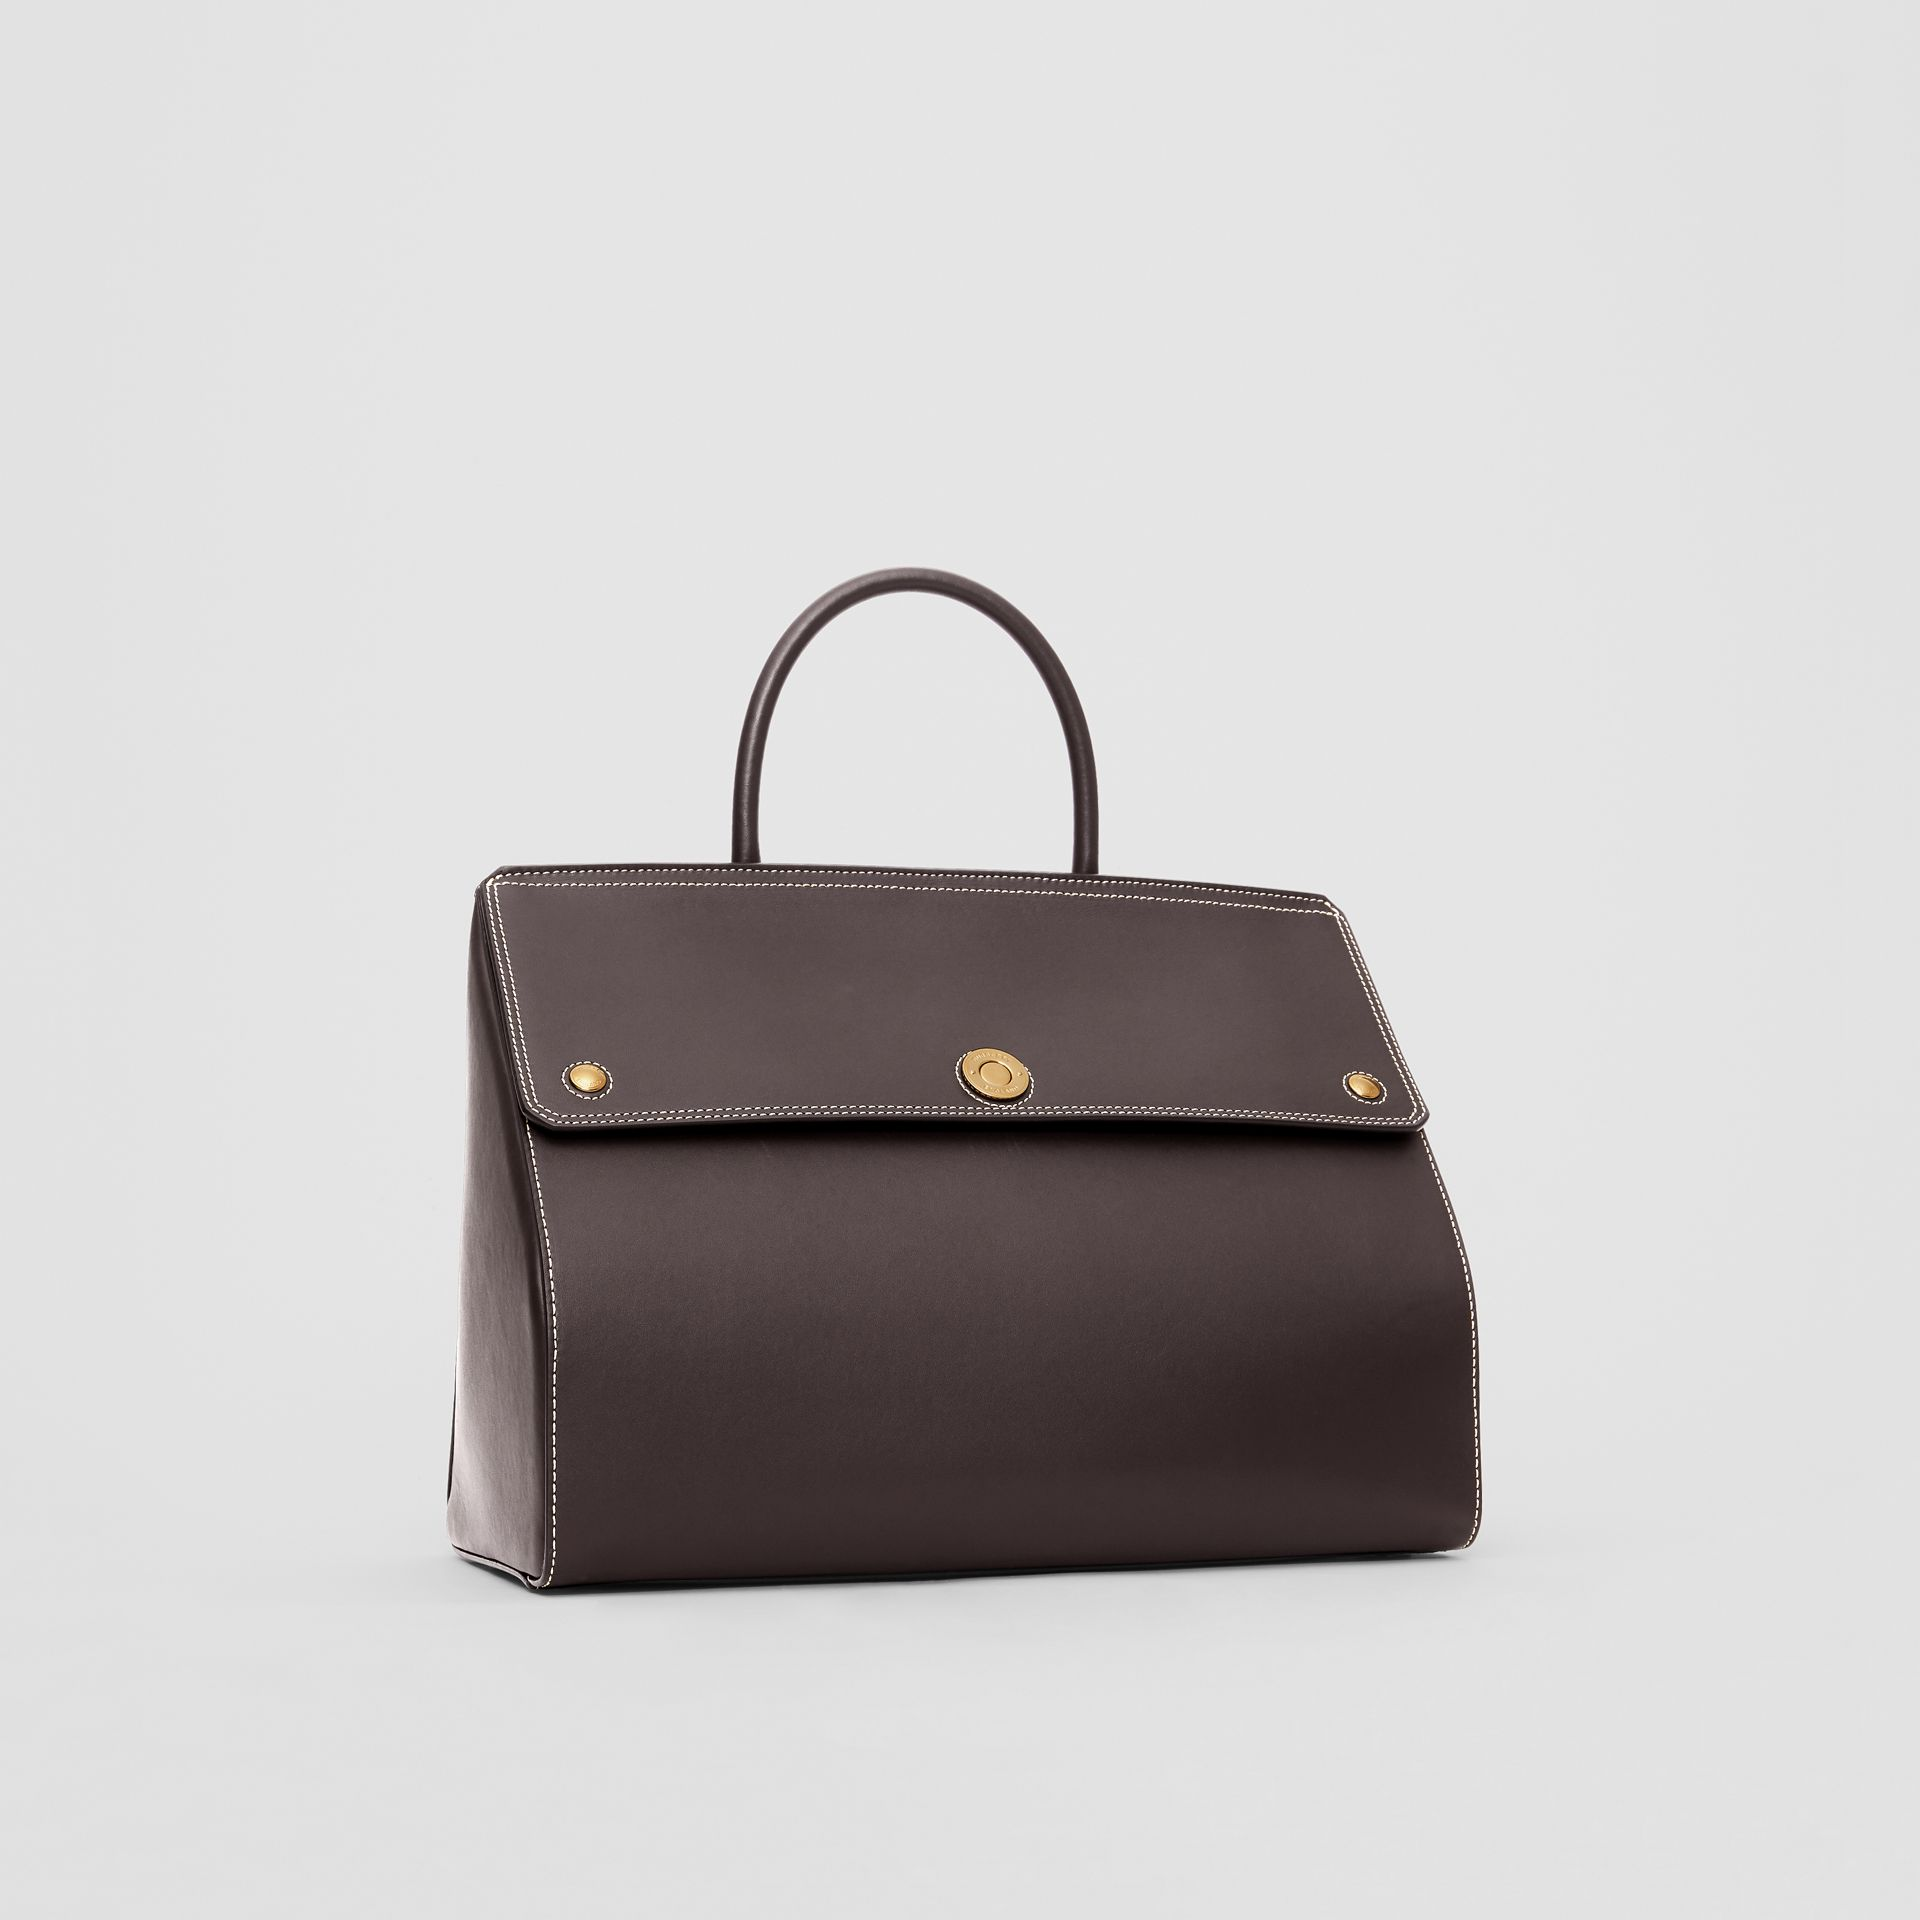 Medium Leather Elizabeth Bag in Coffee - Women | Burberry - gallery image 6